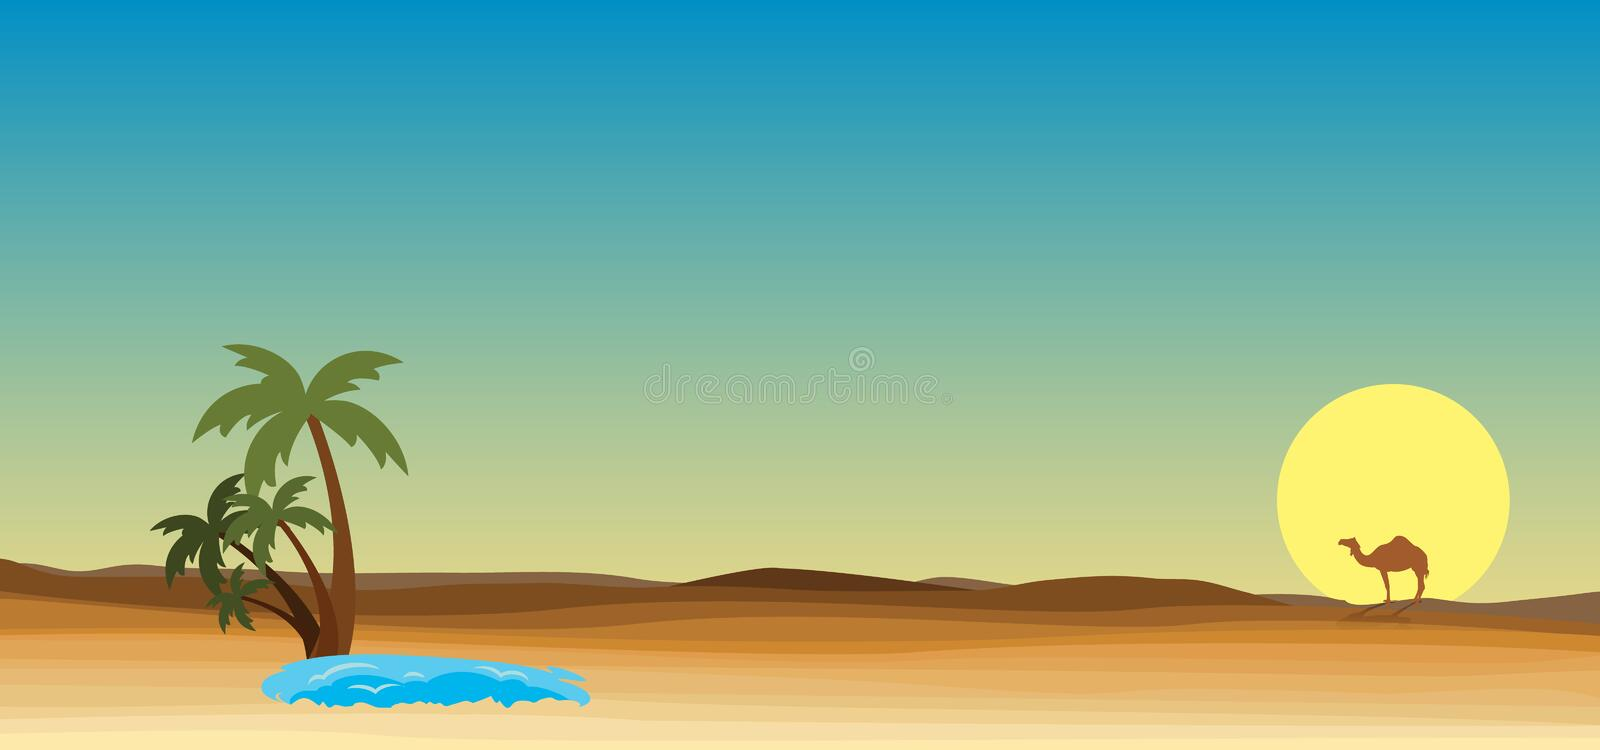 Oasis at the desert stock images